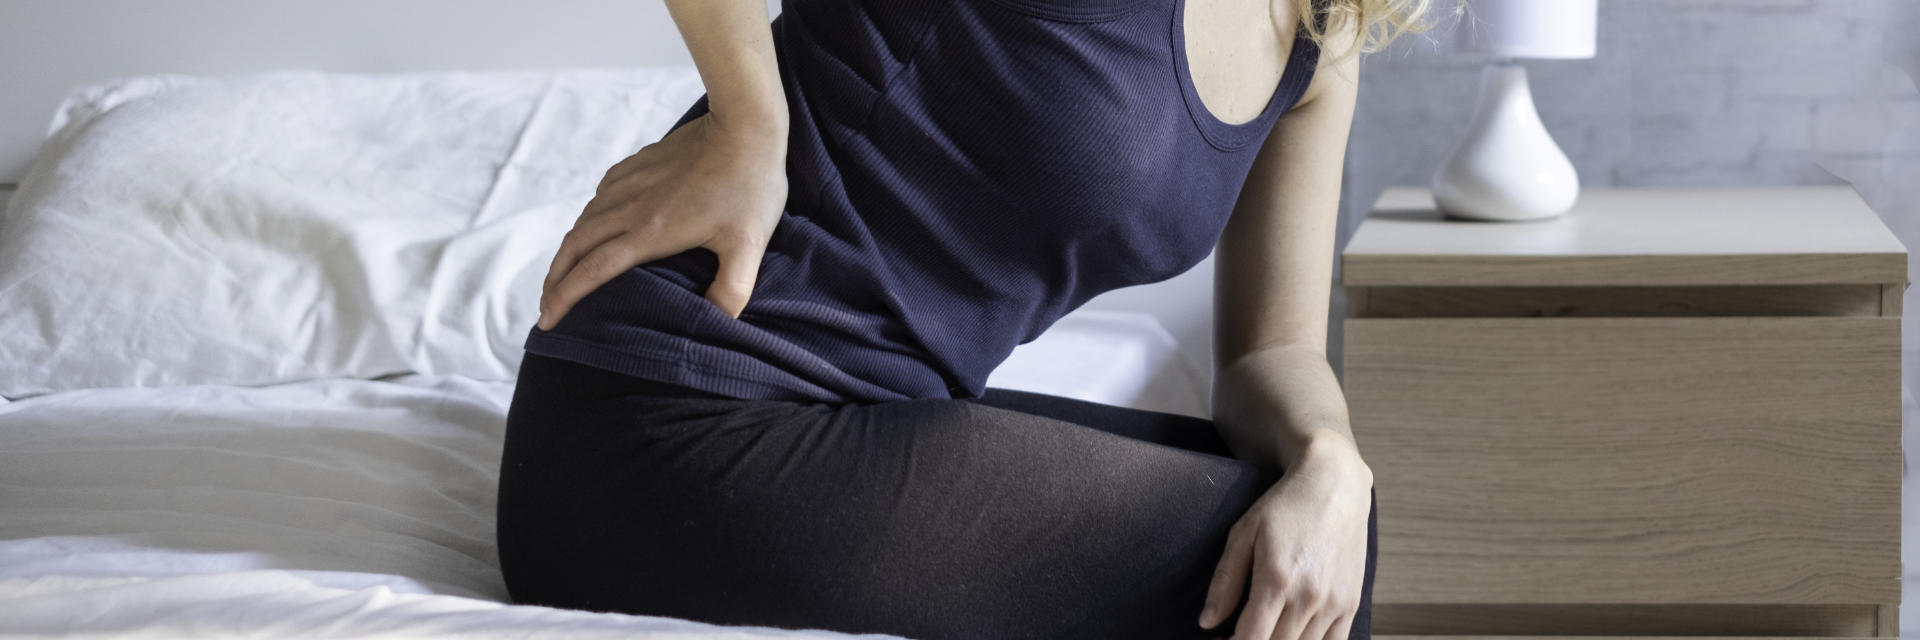 A woman feeling hip pain while trying to get up from the bed.